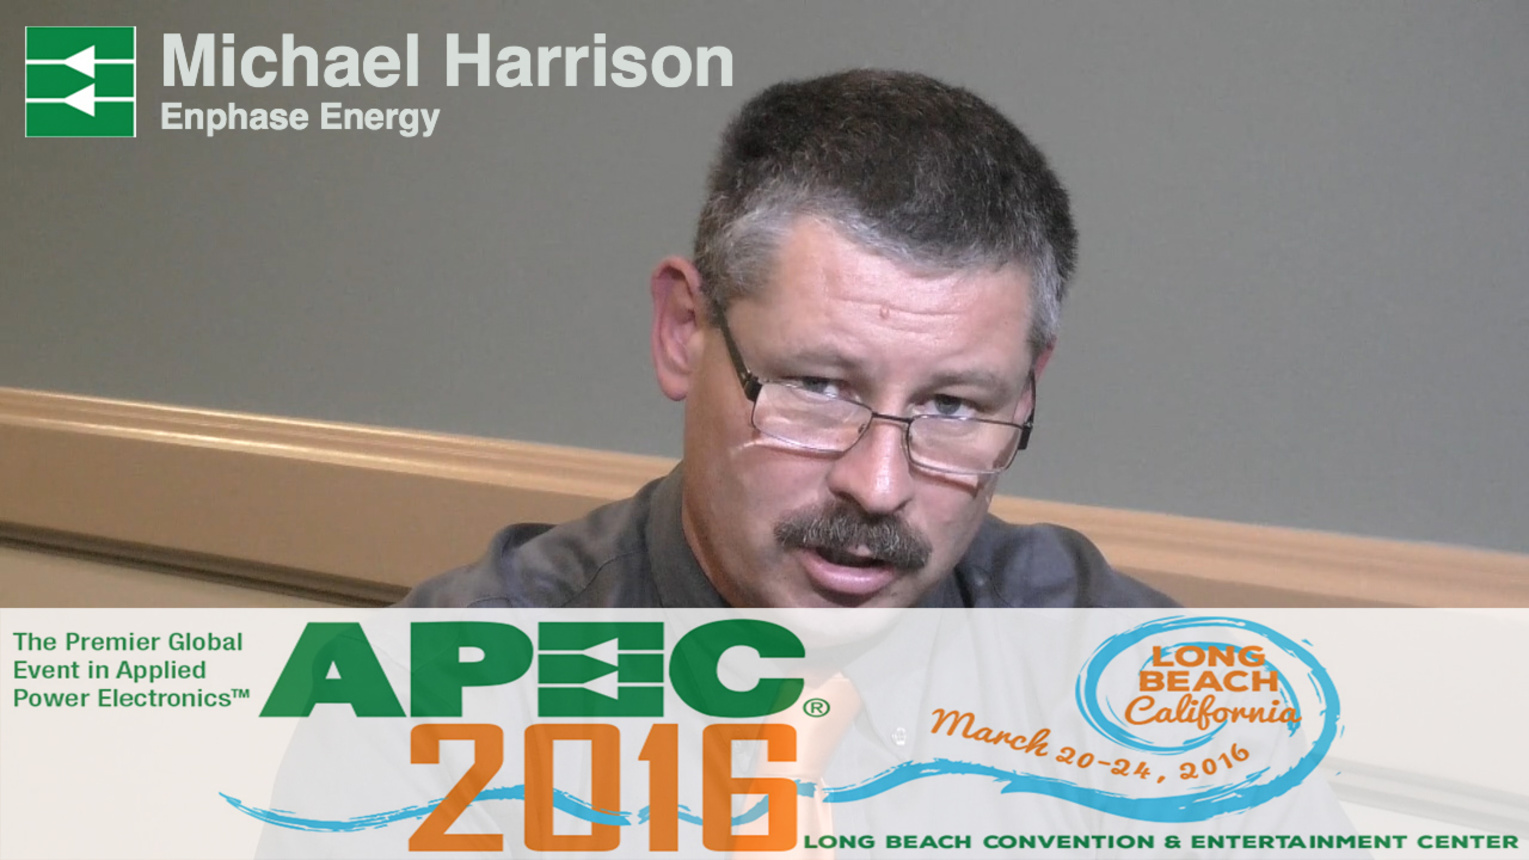 The Future of Power Electronics Design - Michael Harrison at APEC 2016